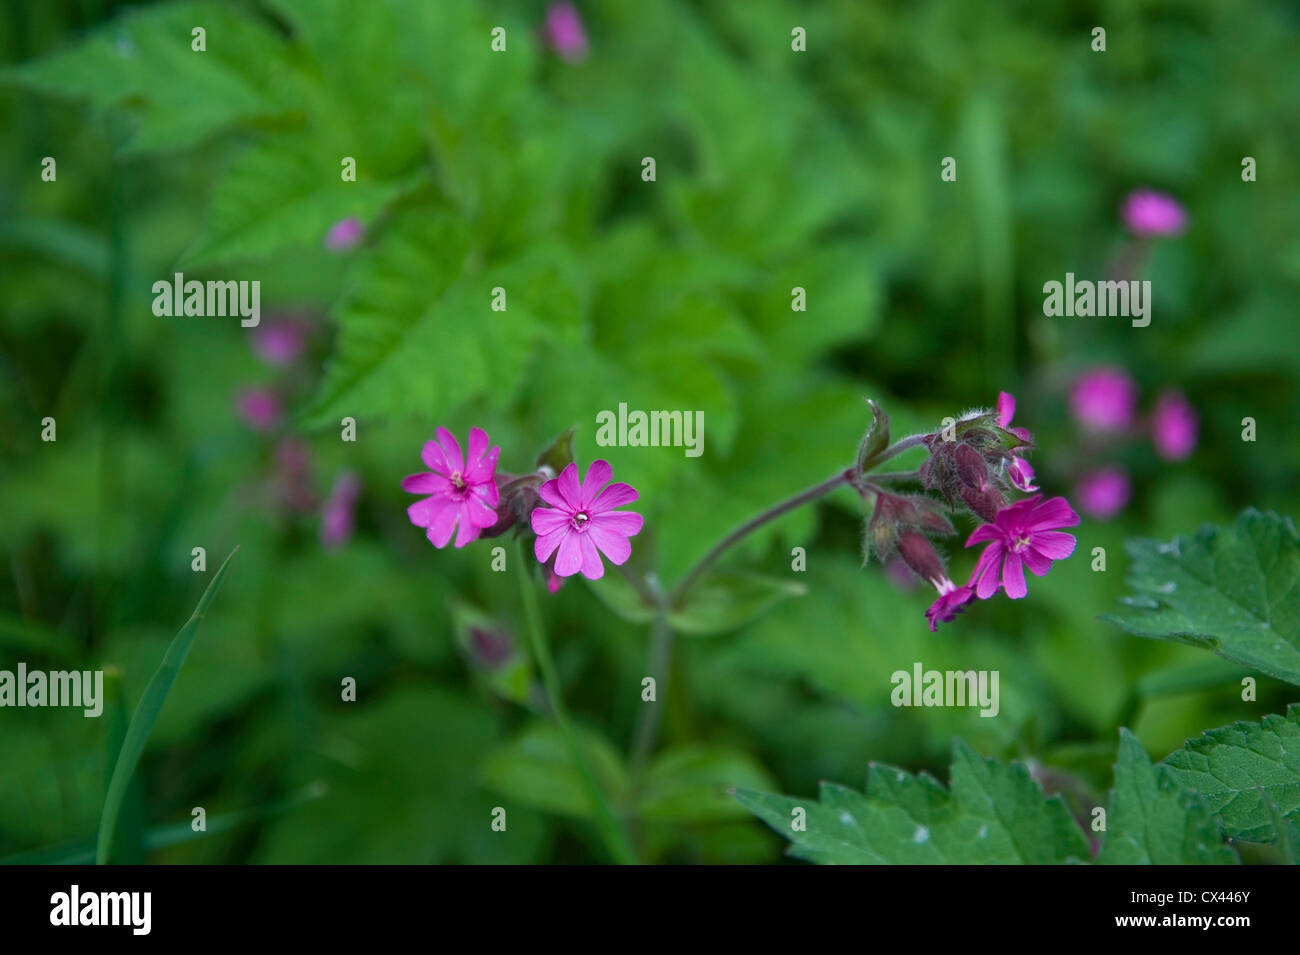 Wild flowers along the hedgerows on The Ridgeway, Oxfordshire, UK Stock Photo